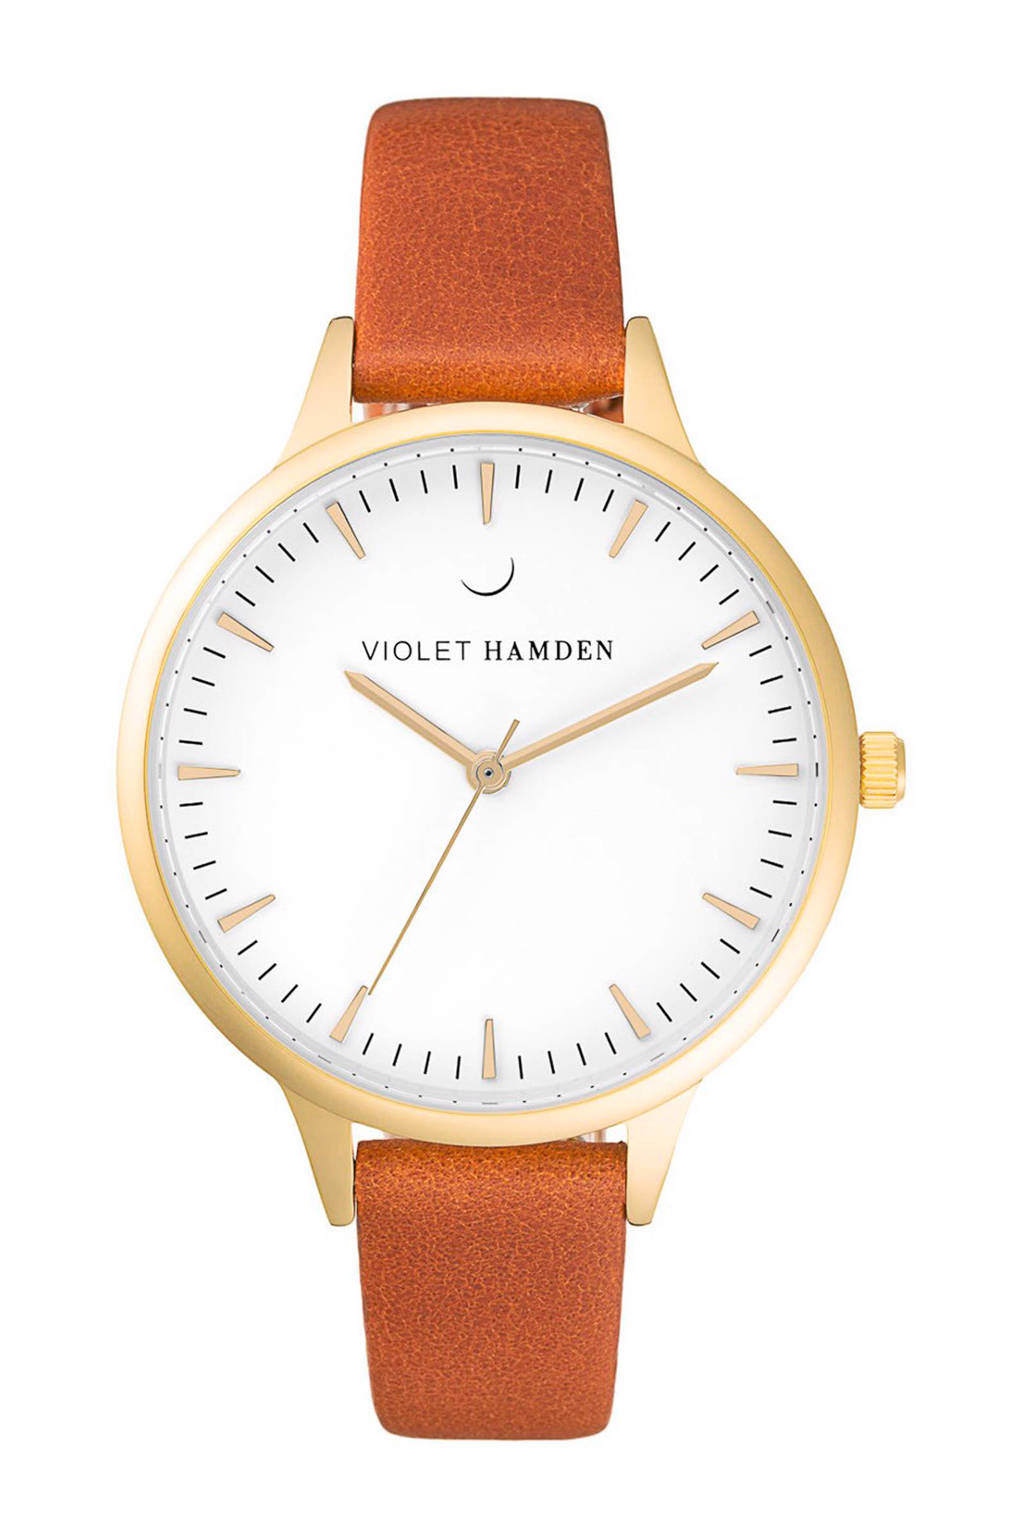 Violet Hamden Day & Night horloge - VH00109, Goud/brique/wit